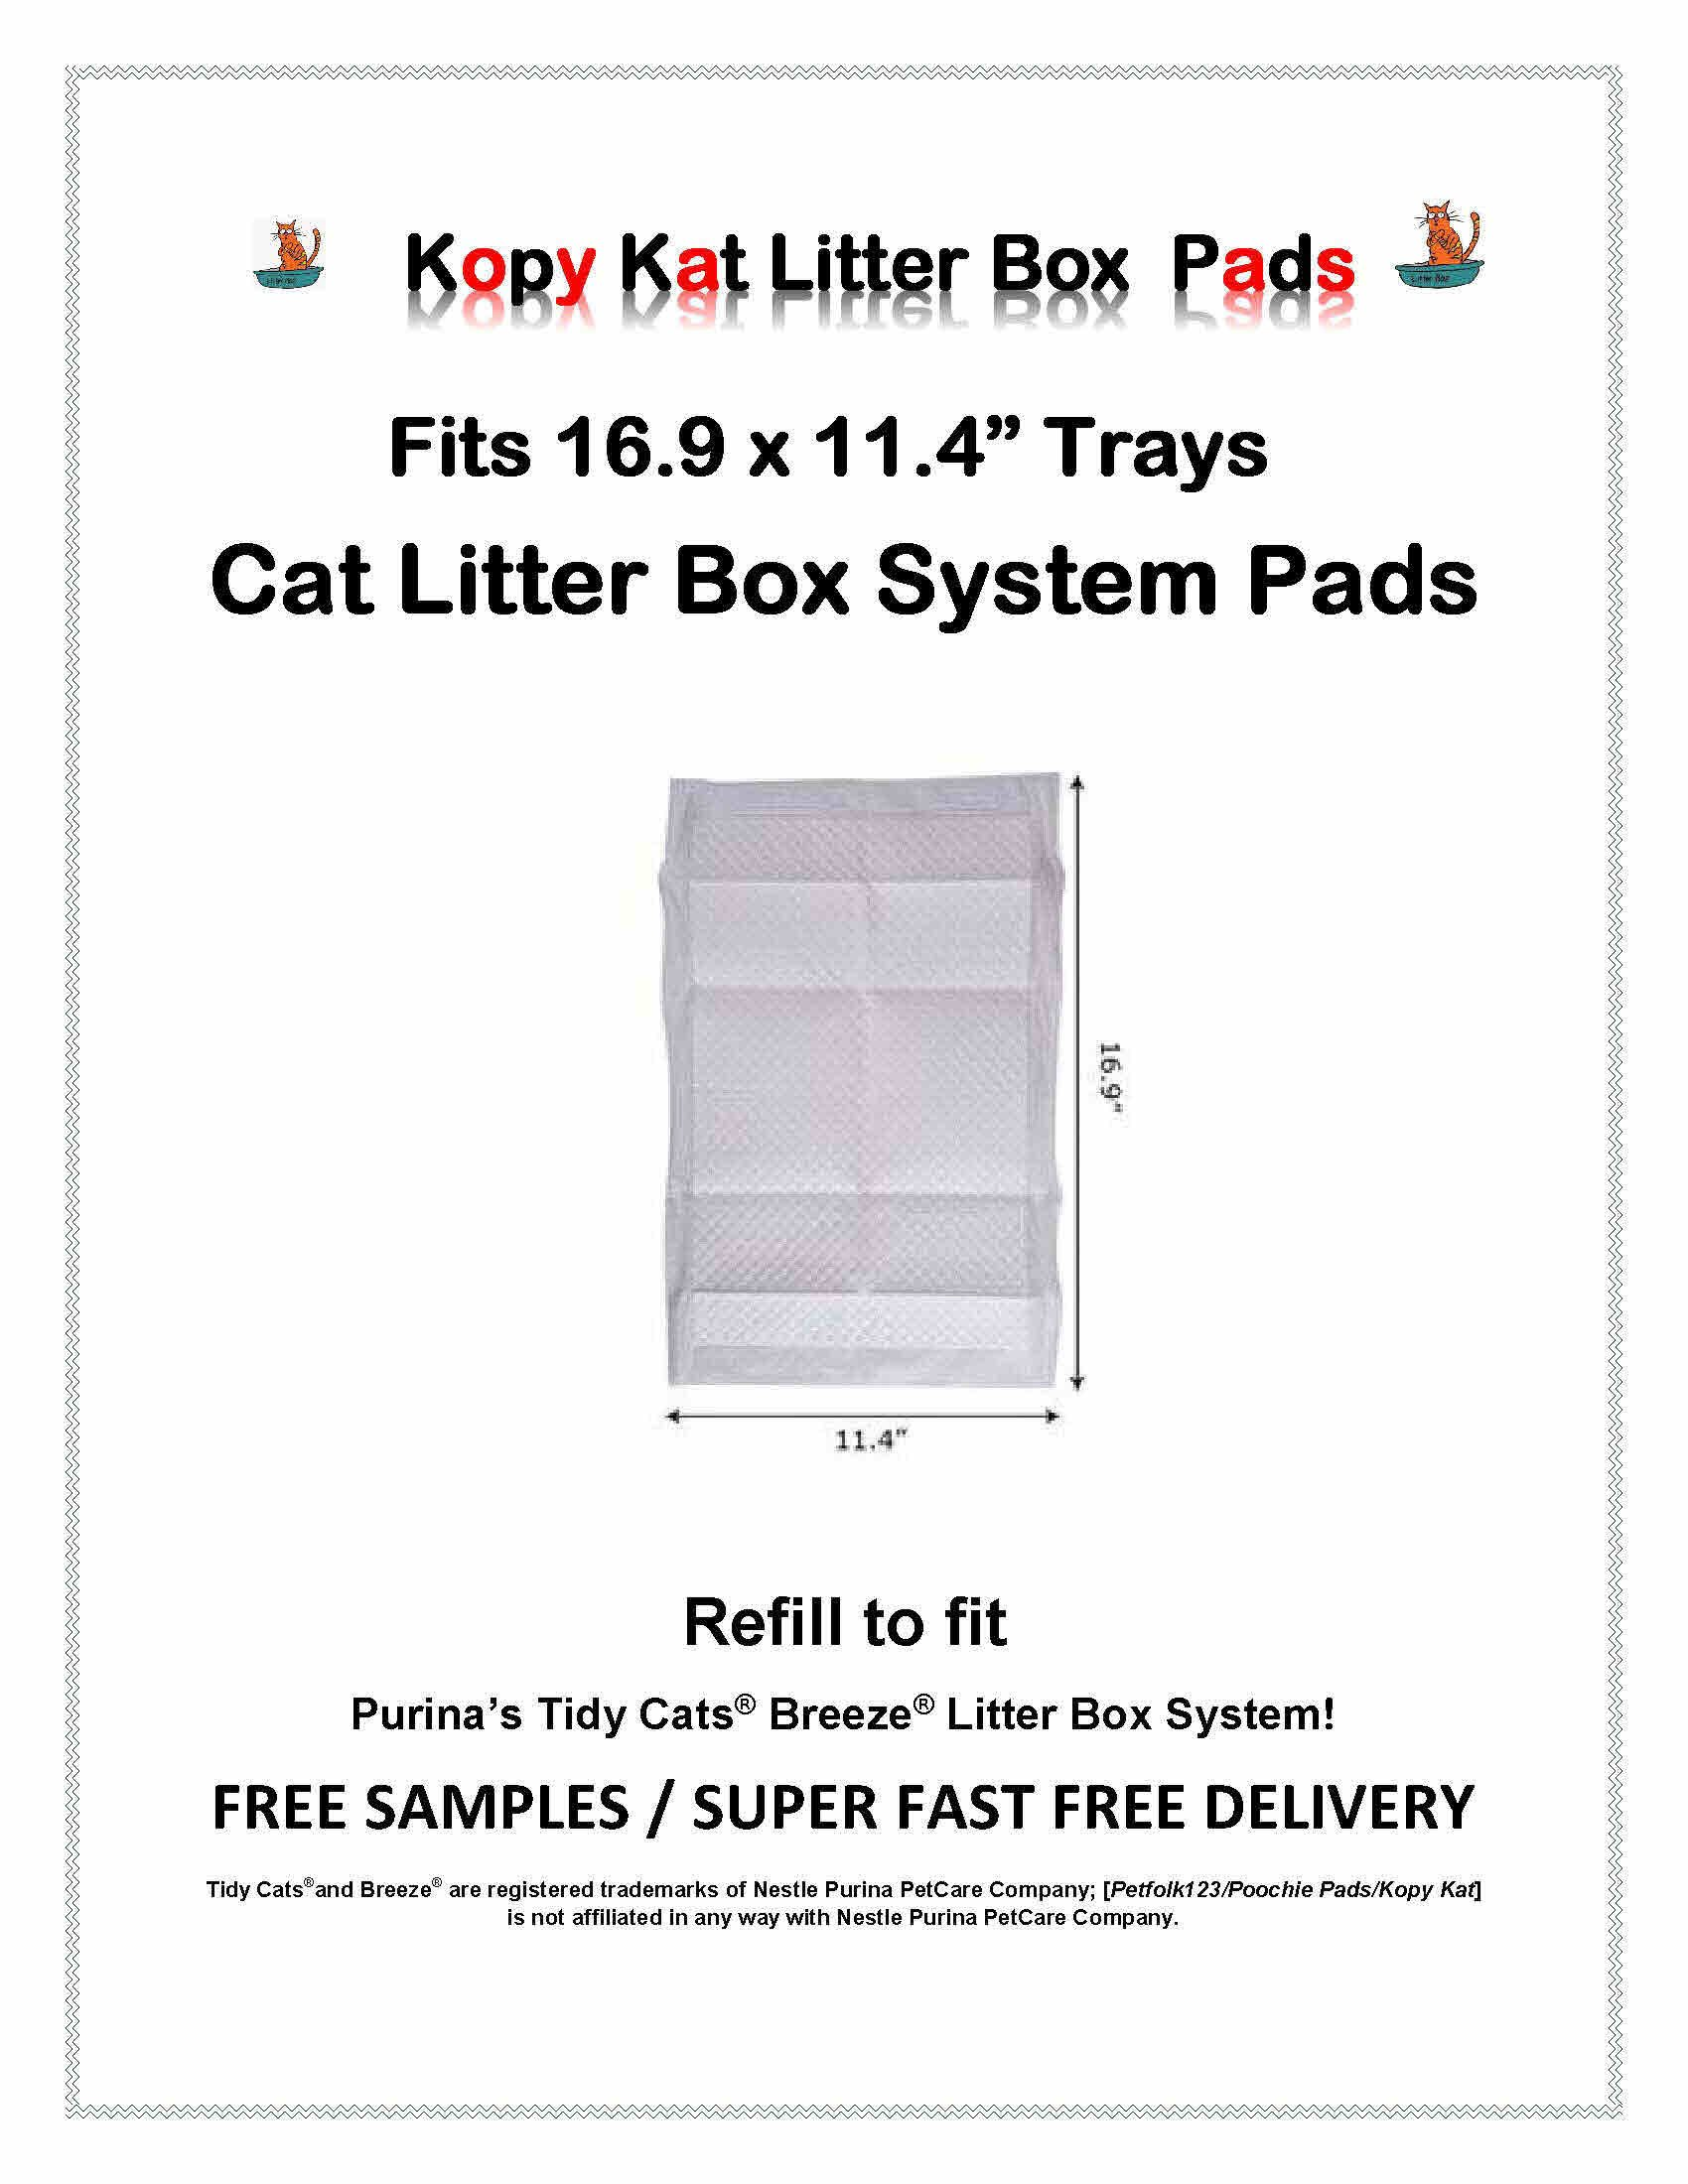 Kopy Kat 16.9 x 11.4 Cat Litter Box Pads Refill Pads-Same Quality Less Expensive 120 pads by Kopy Kat